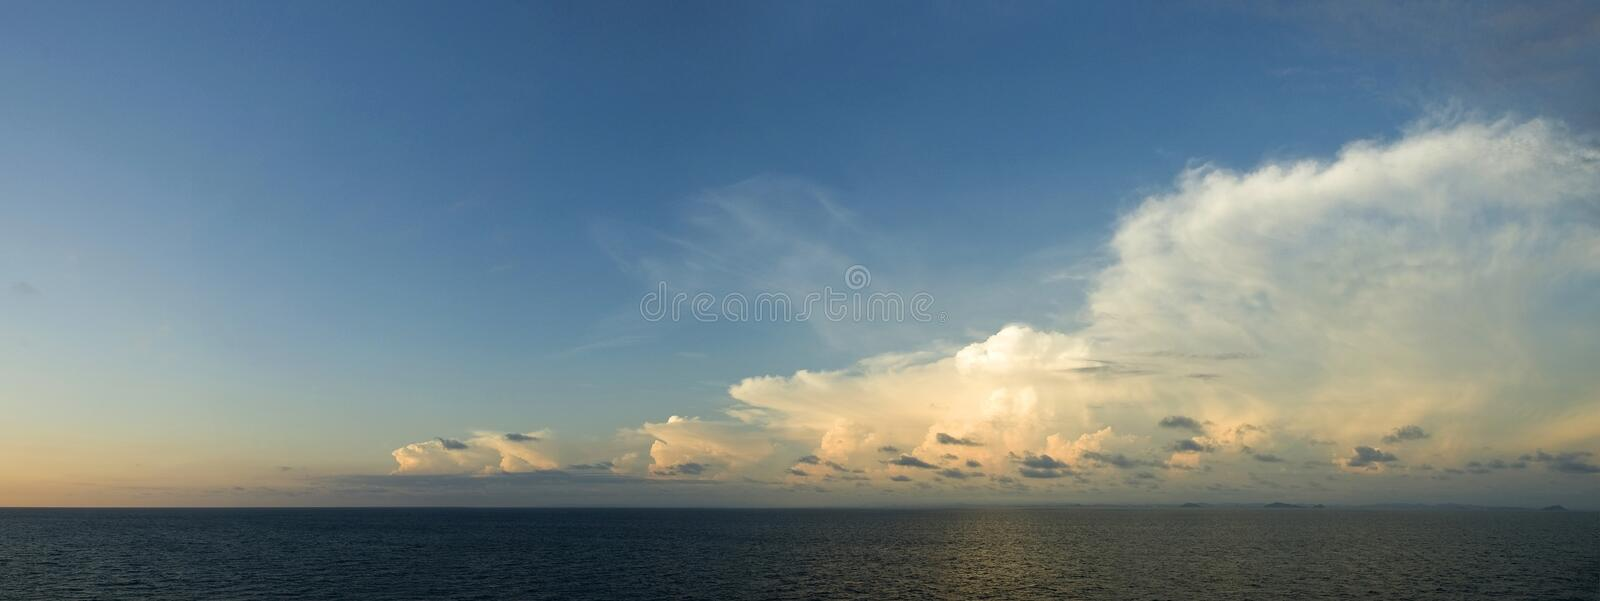 Overcast Sky Meets Clear Sky Royalty Free Stock Photography